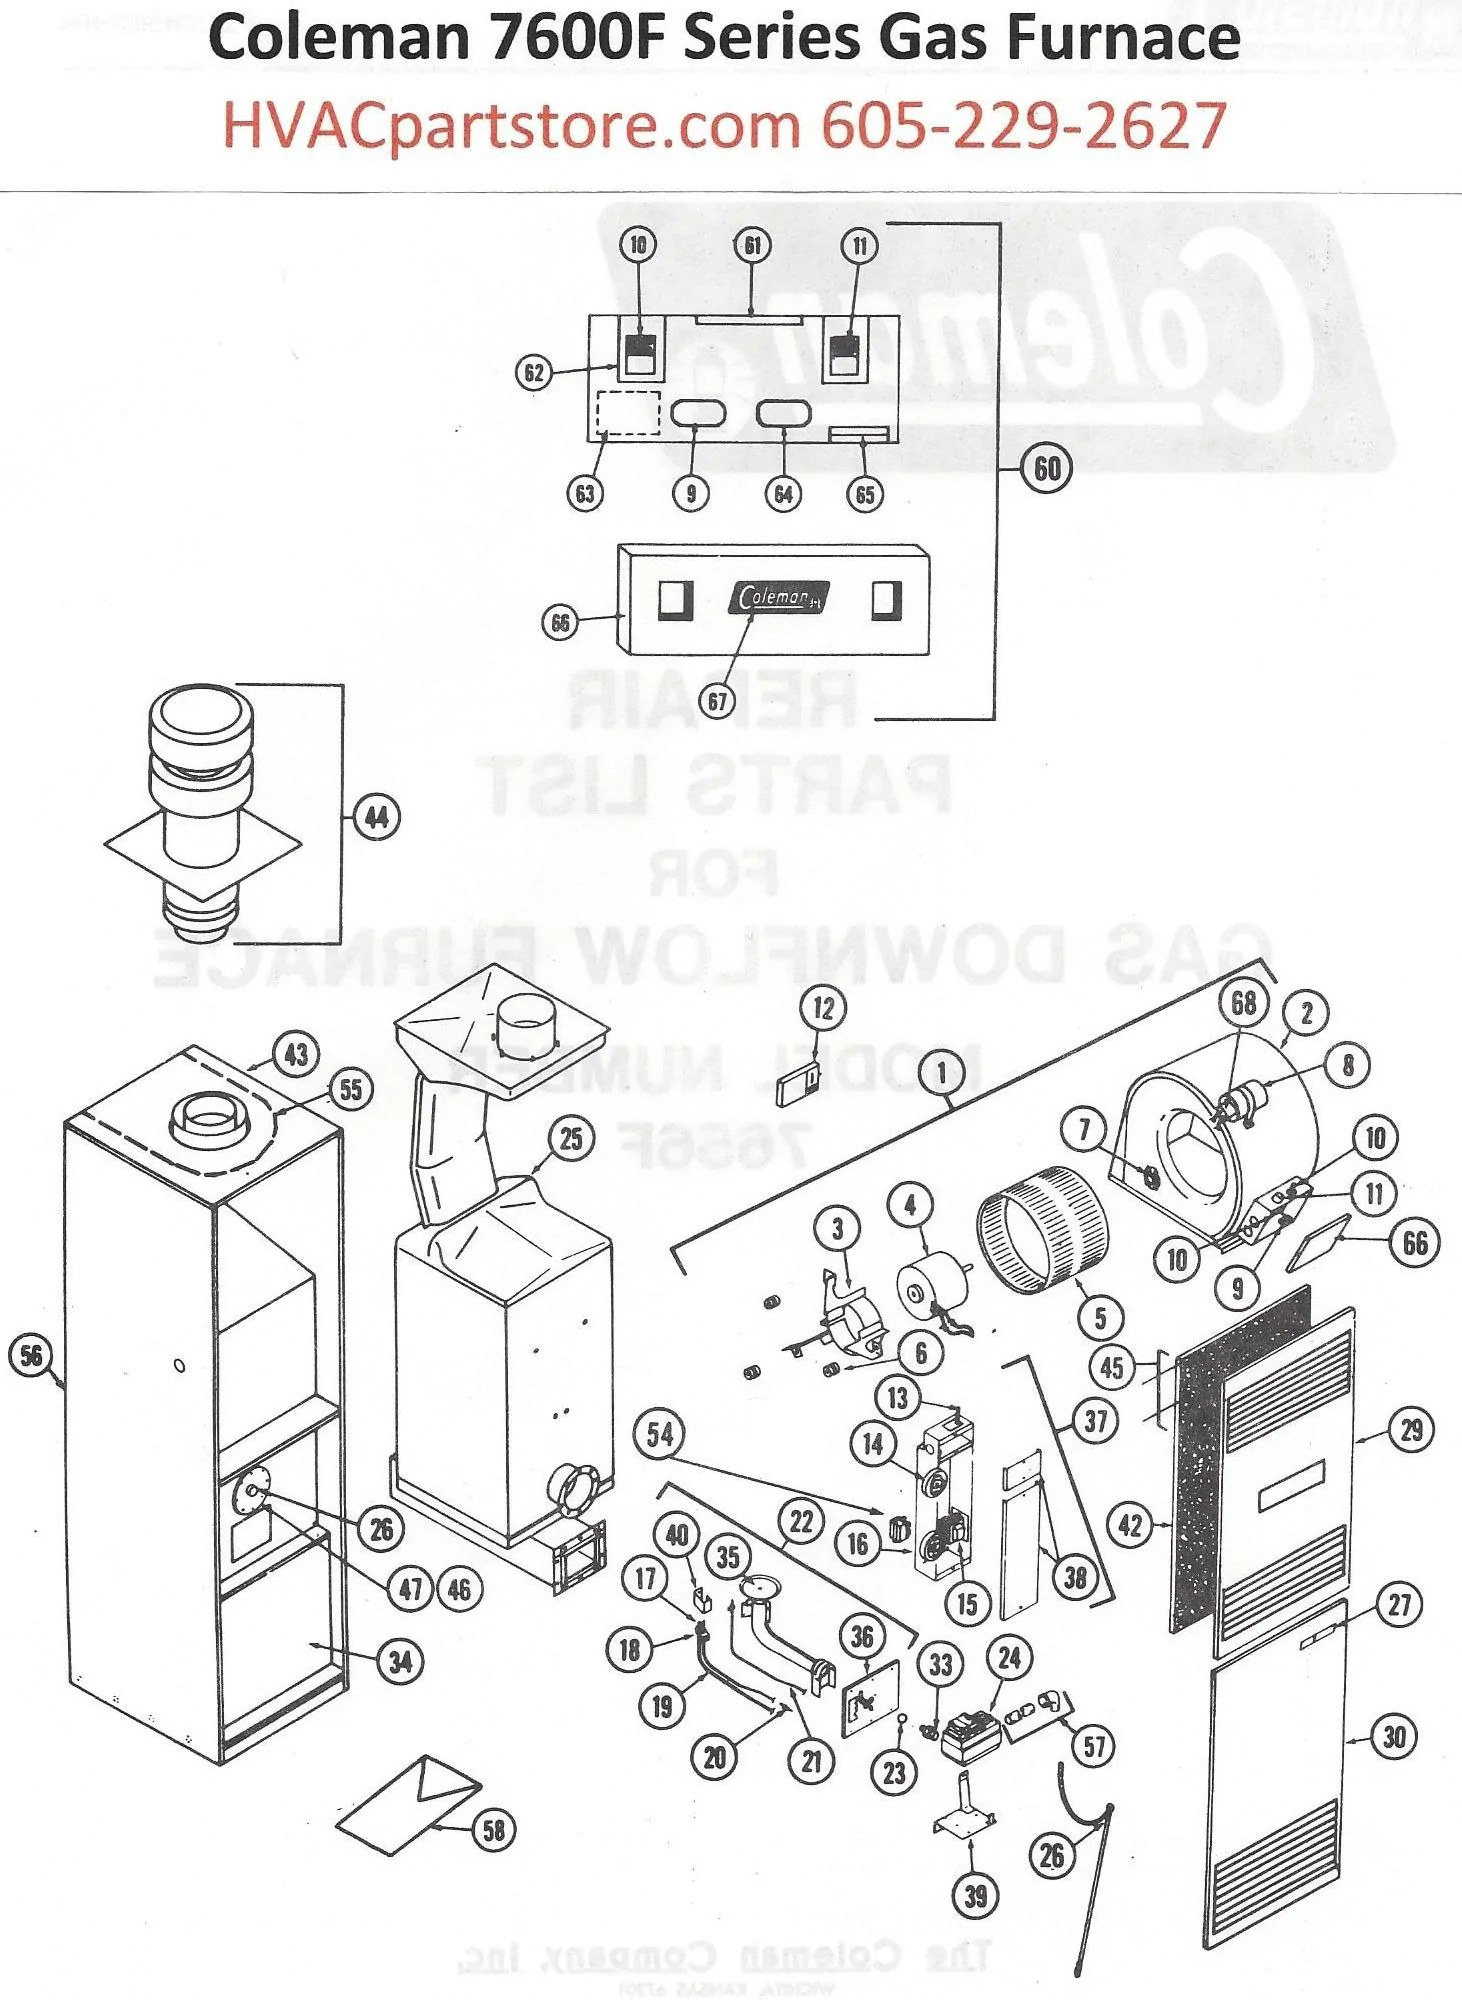 coleman gas furnace diagram wiring diagram expert coleman mobile home furnace schematic 7656f856 coleman gas furnace [ 1462 x 2000 Pixel ]